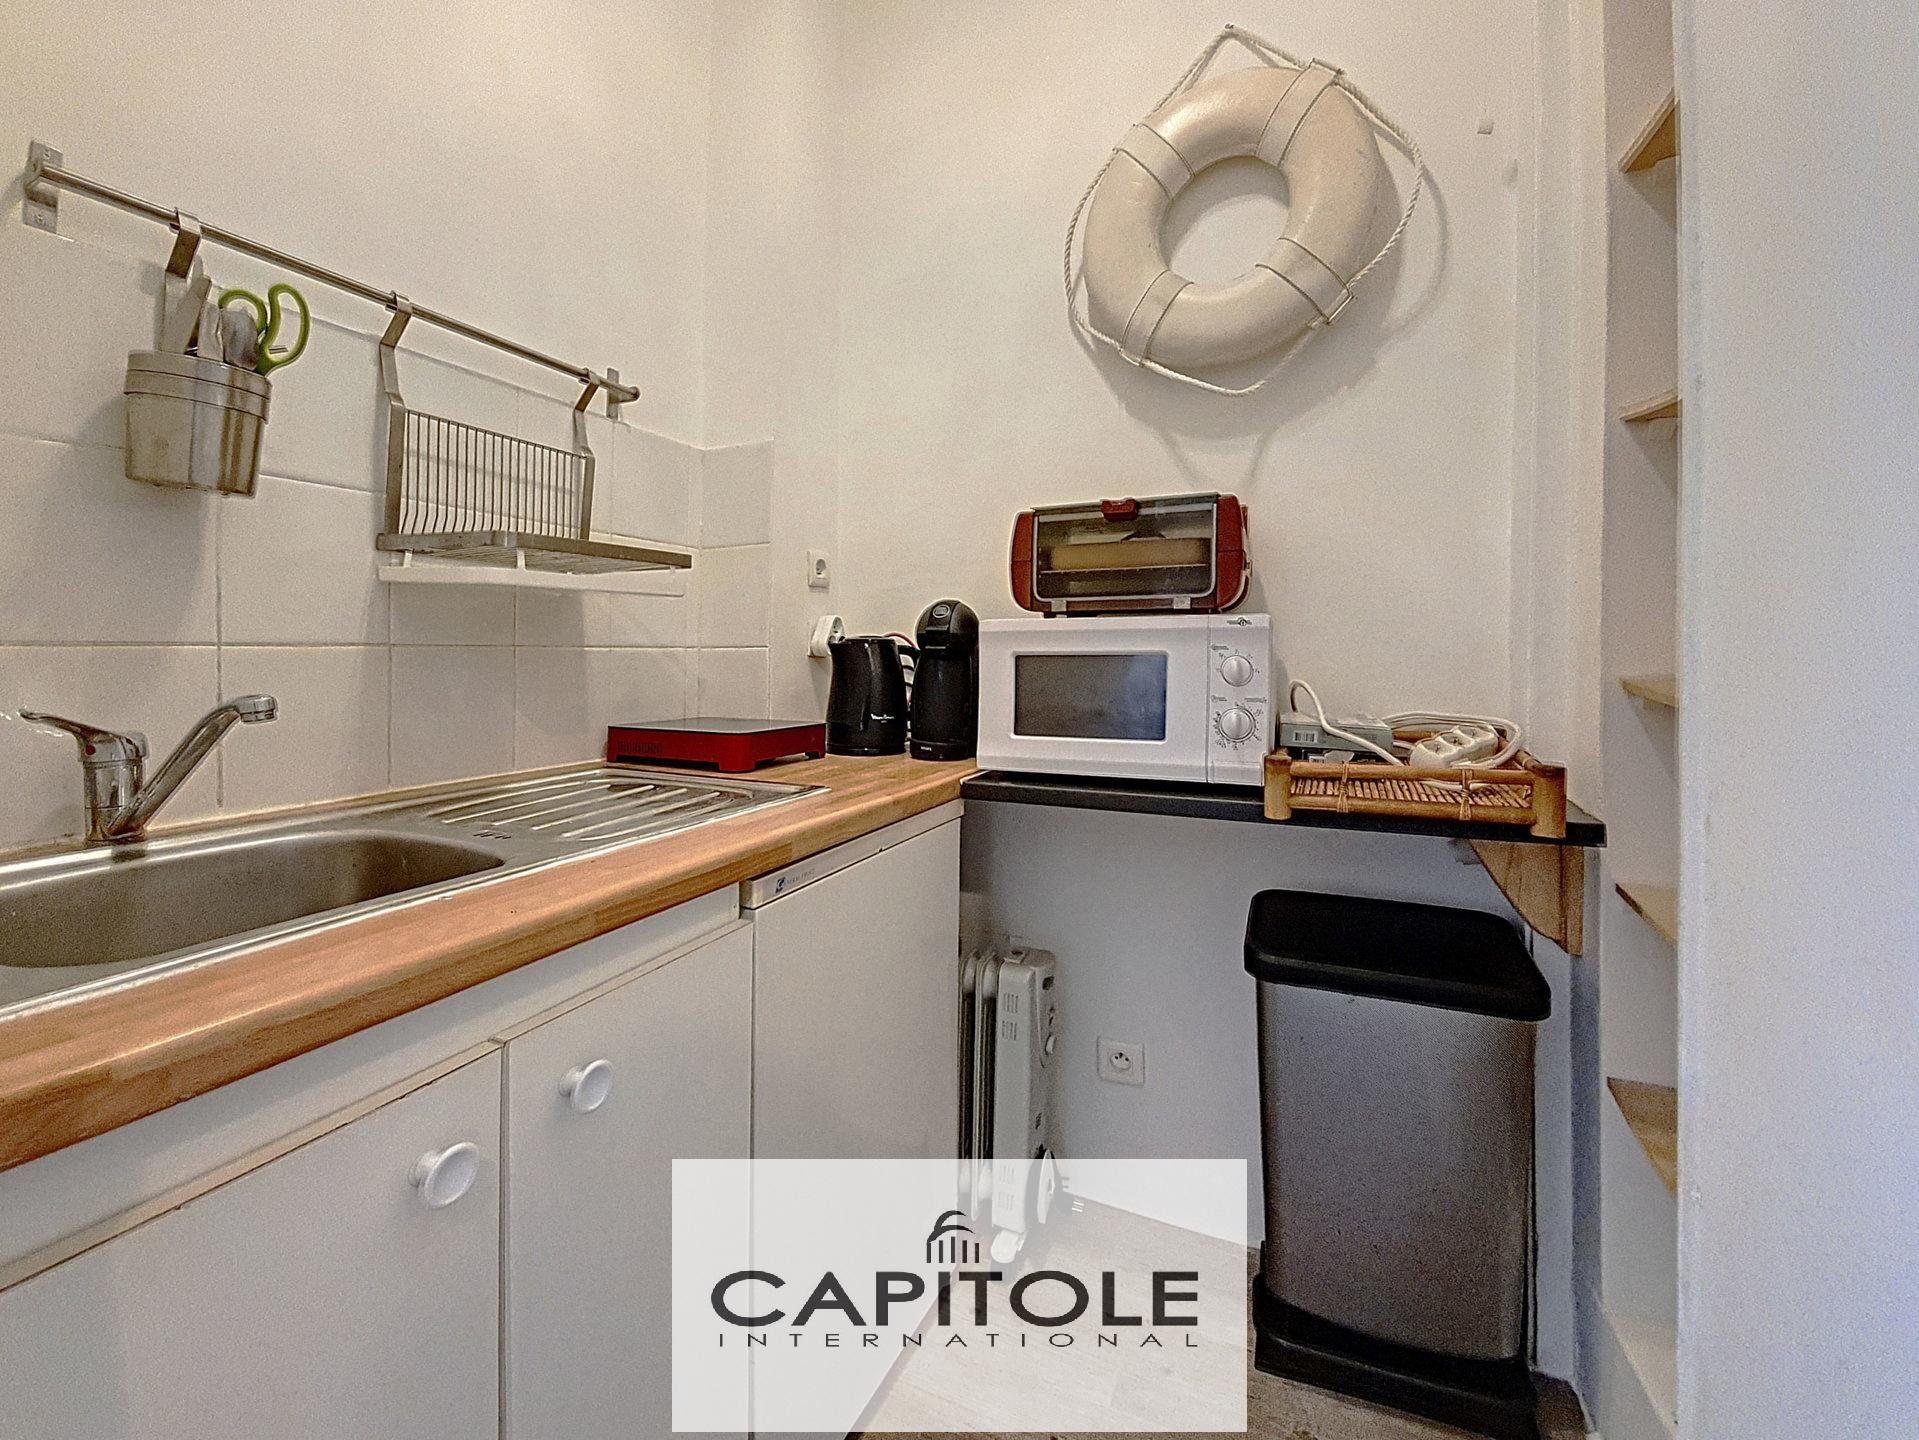 For sale, Cannes,  spacious studio apartment, fitted kitchen